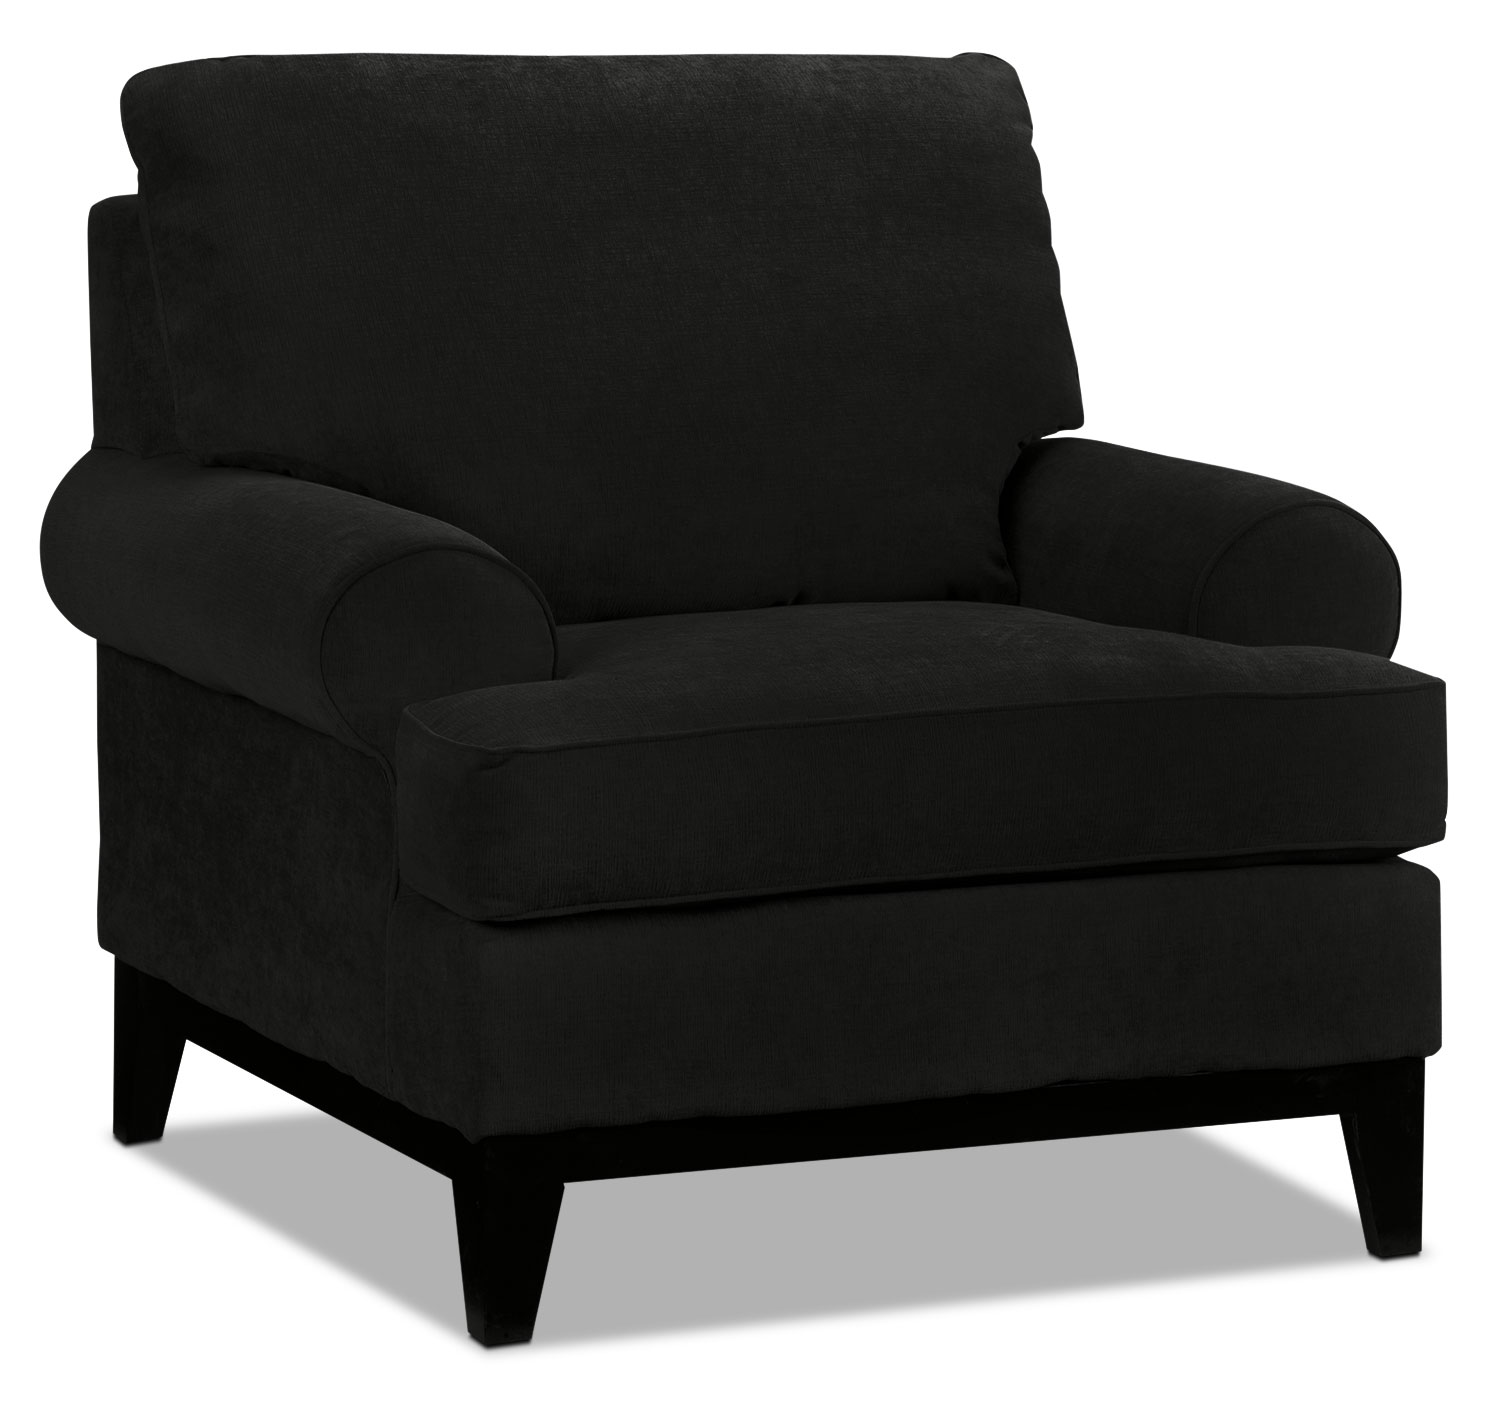 Crizia Chair - Black